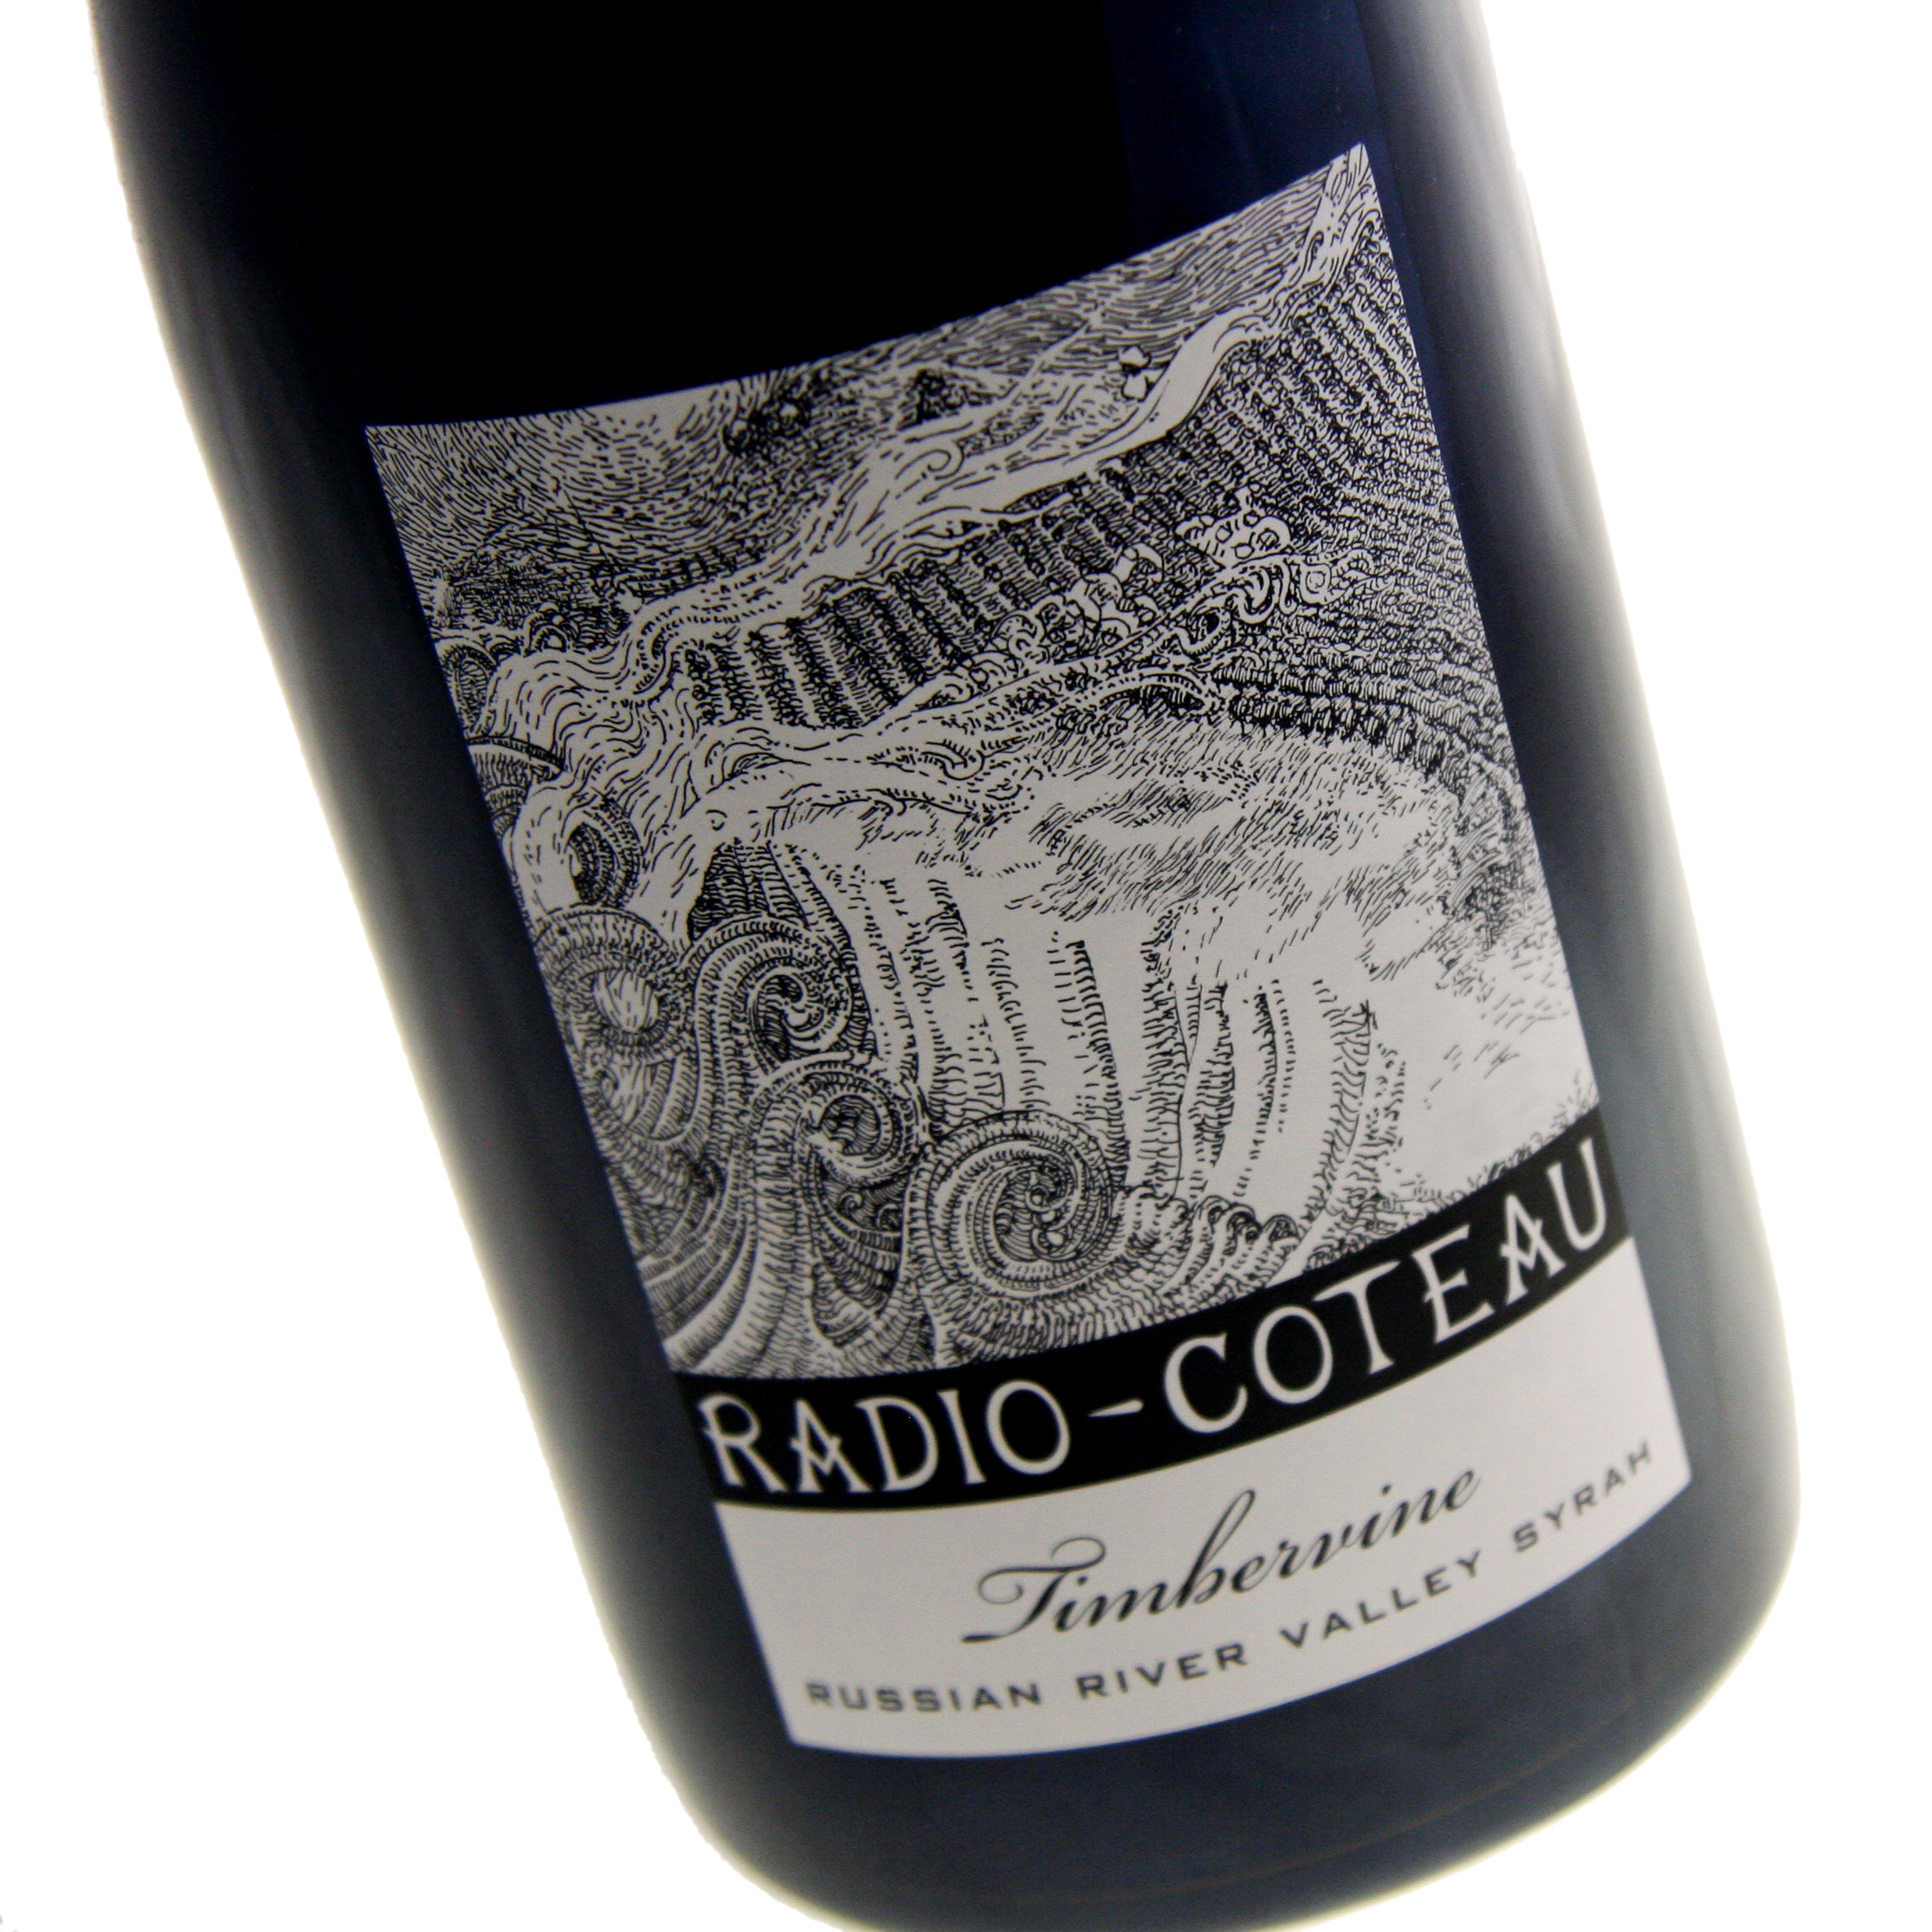 Radio-Coteau - Timbervine Syrah, Russian River Valley 2012 12x 75cl Bottles